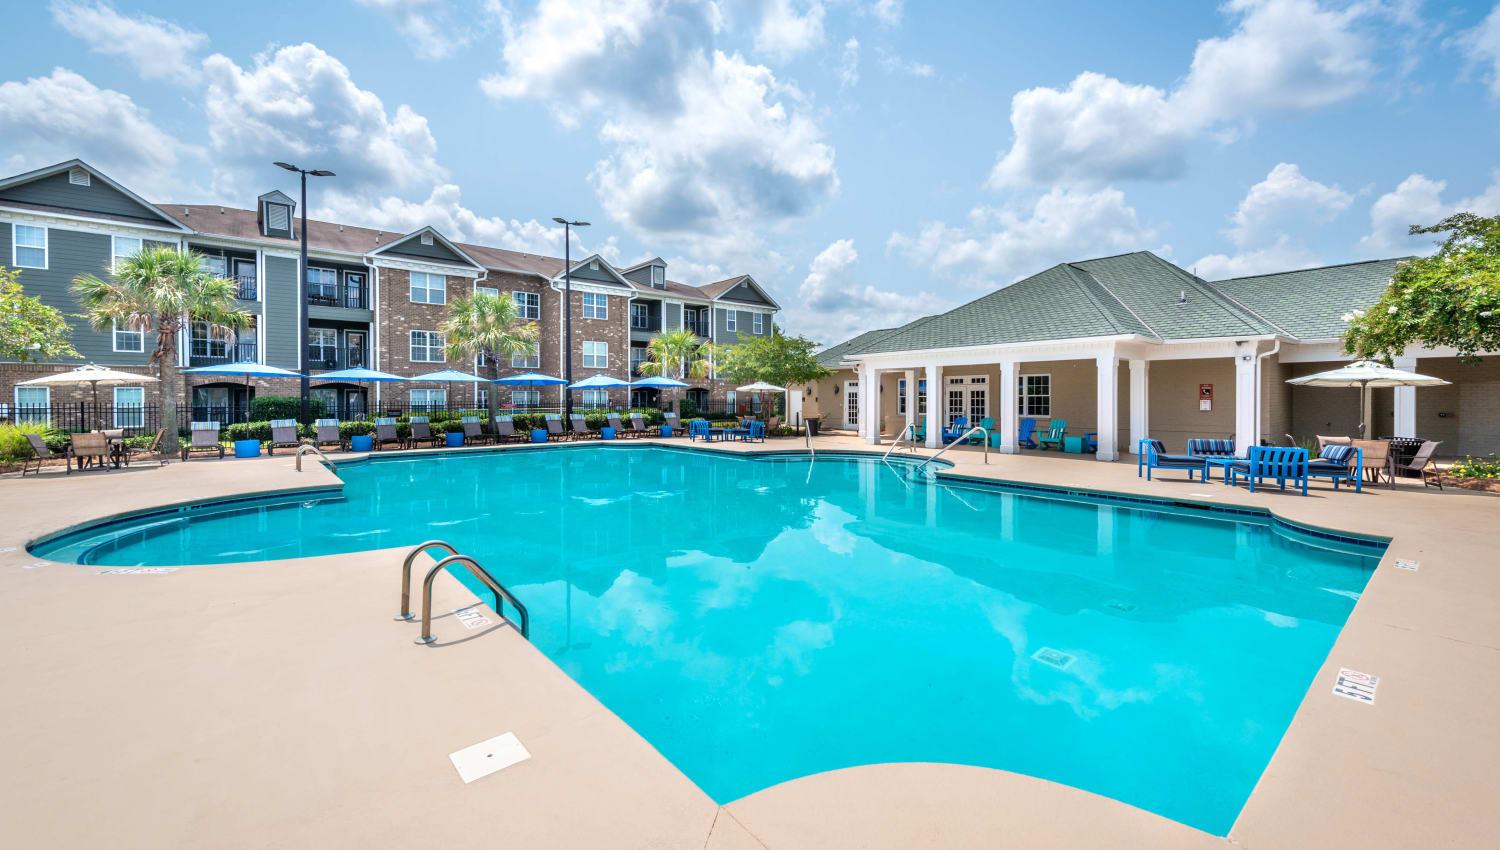 Resort-style swimming pool on a sunny day at Olympus Carrington in Pooler, Georgia